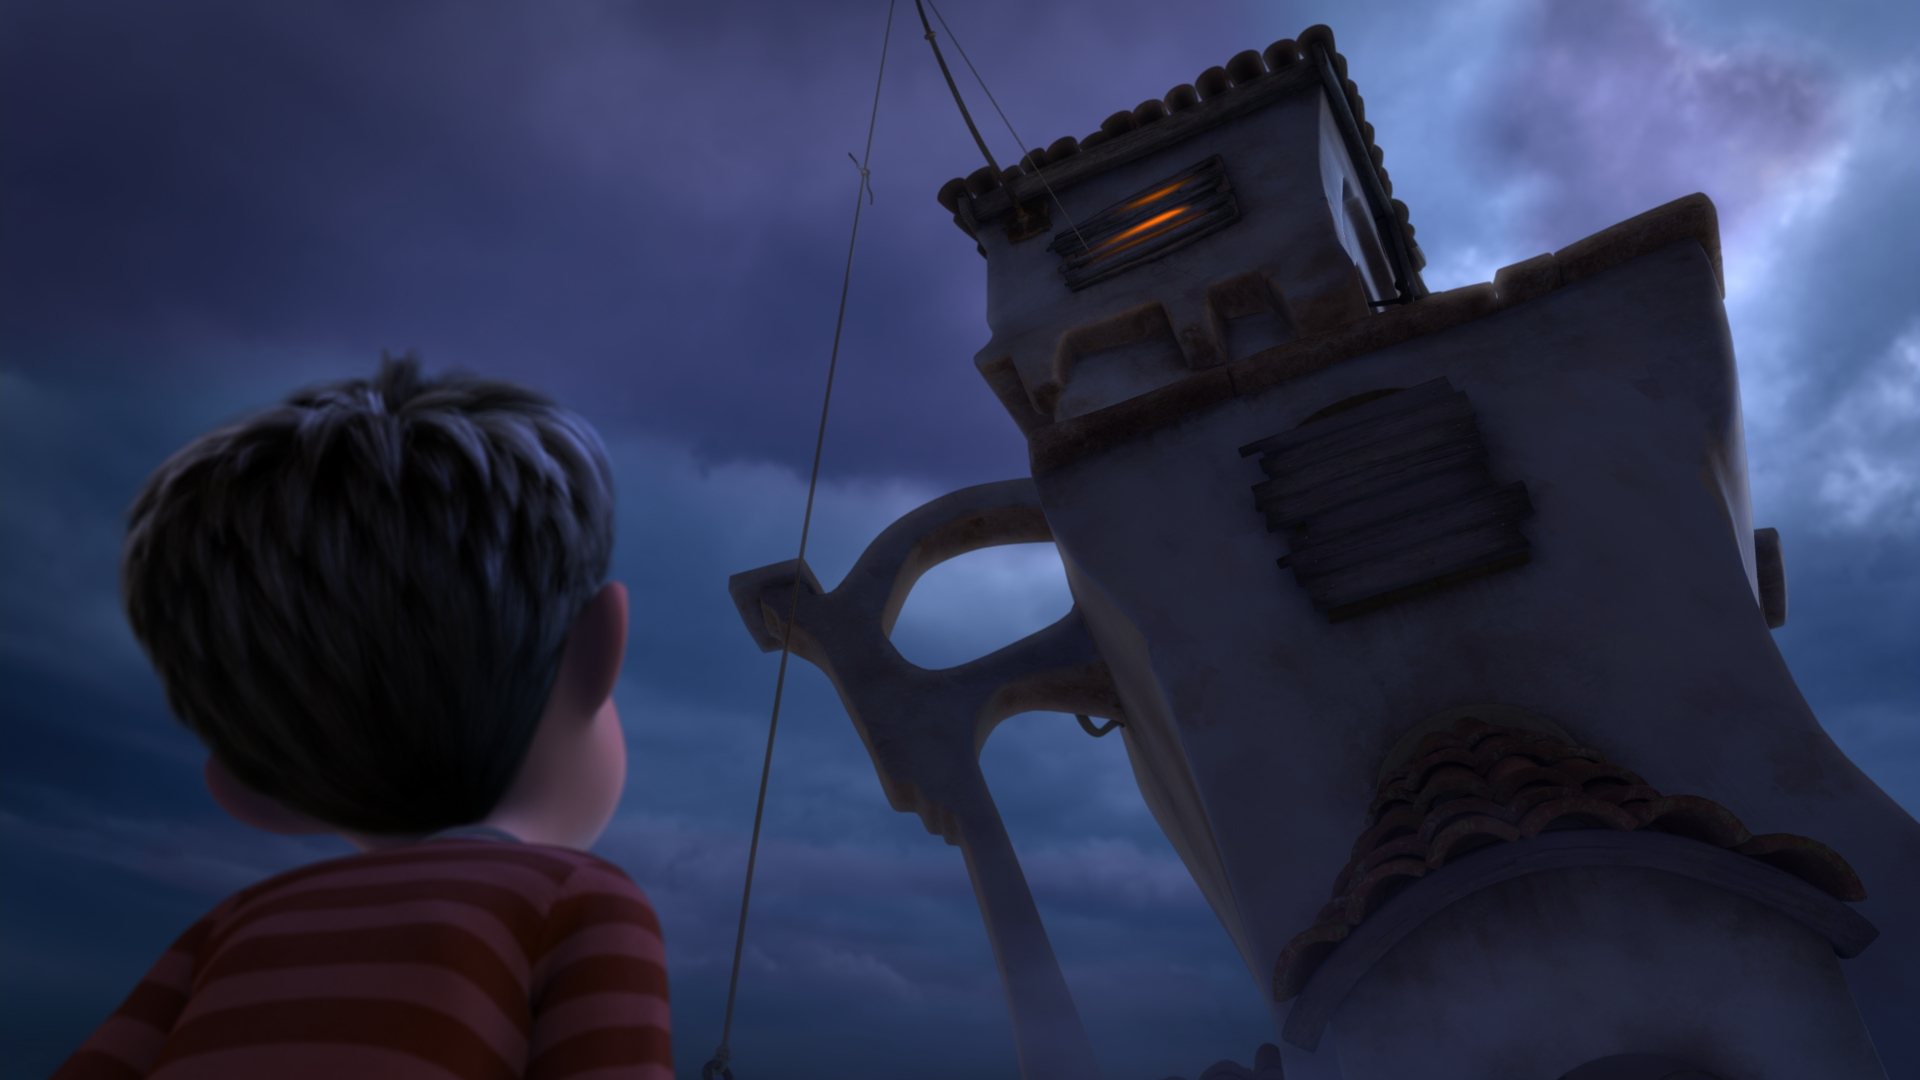 Ted and the Once-Ler's house from Dr. Seuss The Lorax Movie 2012 wallpaper